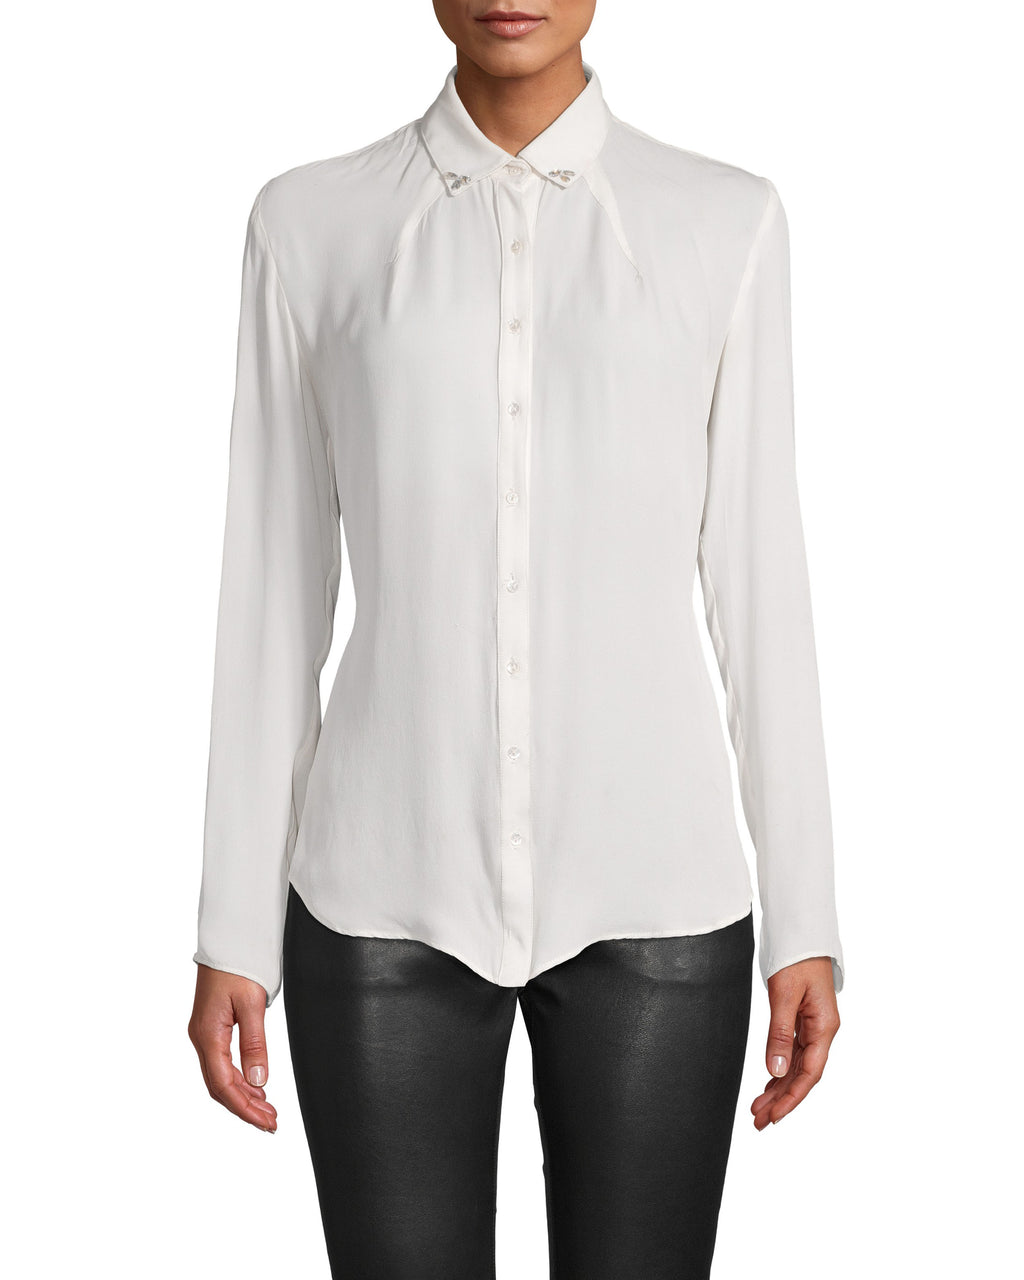 CT18217 - CHARMEUSE BOYFRIEND BLOUSE WITH CRYSTALS - tops - blouses - Boyfriend blouse, upgraded. This classic silhouette gets a feminine upgrade with Swarovski crystal accents at the collar. This thin charmeuse top is silky smooth and can be dressed up or down. Add 1 line break Stylist tip: wear under a blazer for an upgraded office look.